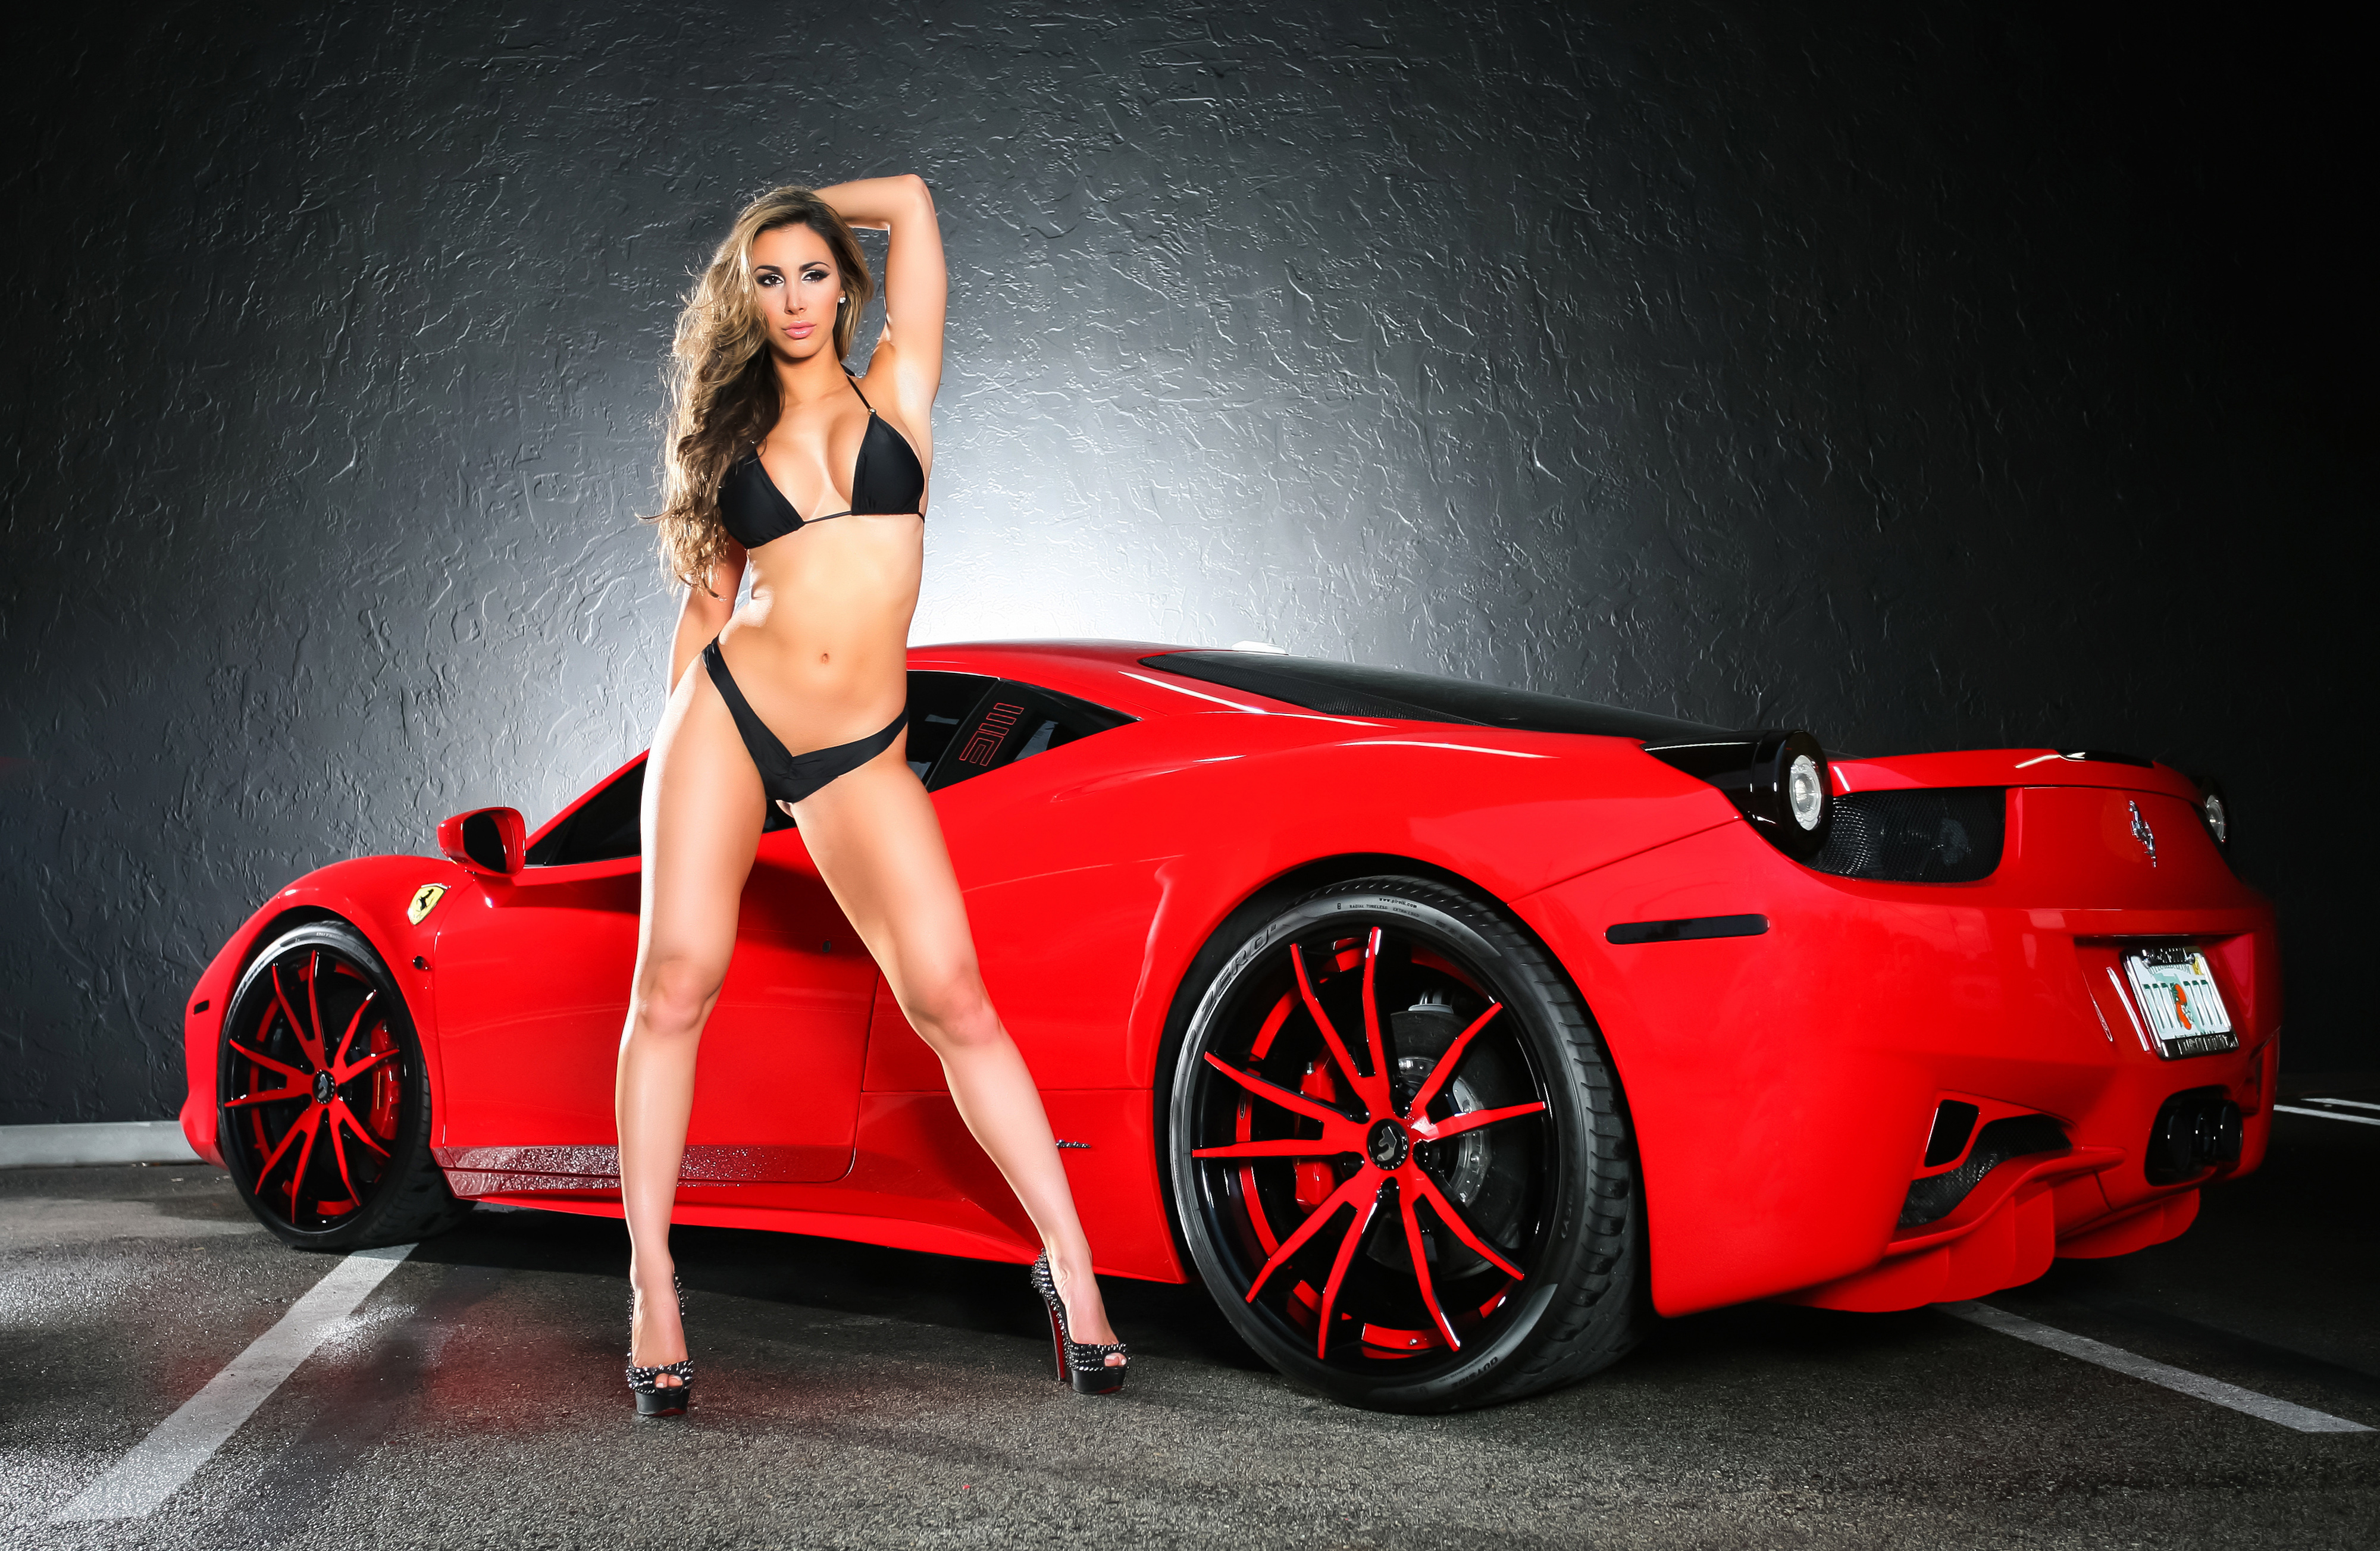 cars with girls wallpaper | 4000x2607 | 191282 | wallpaperup